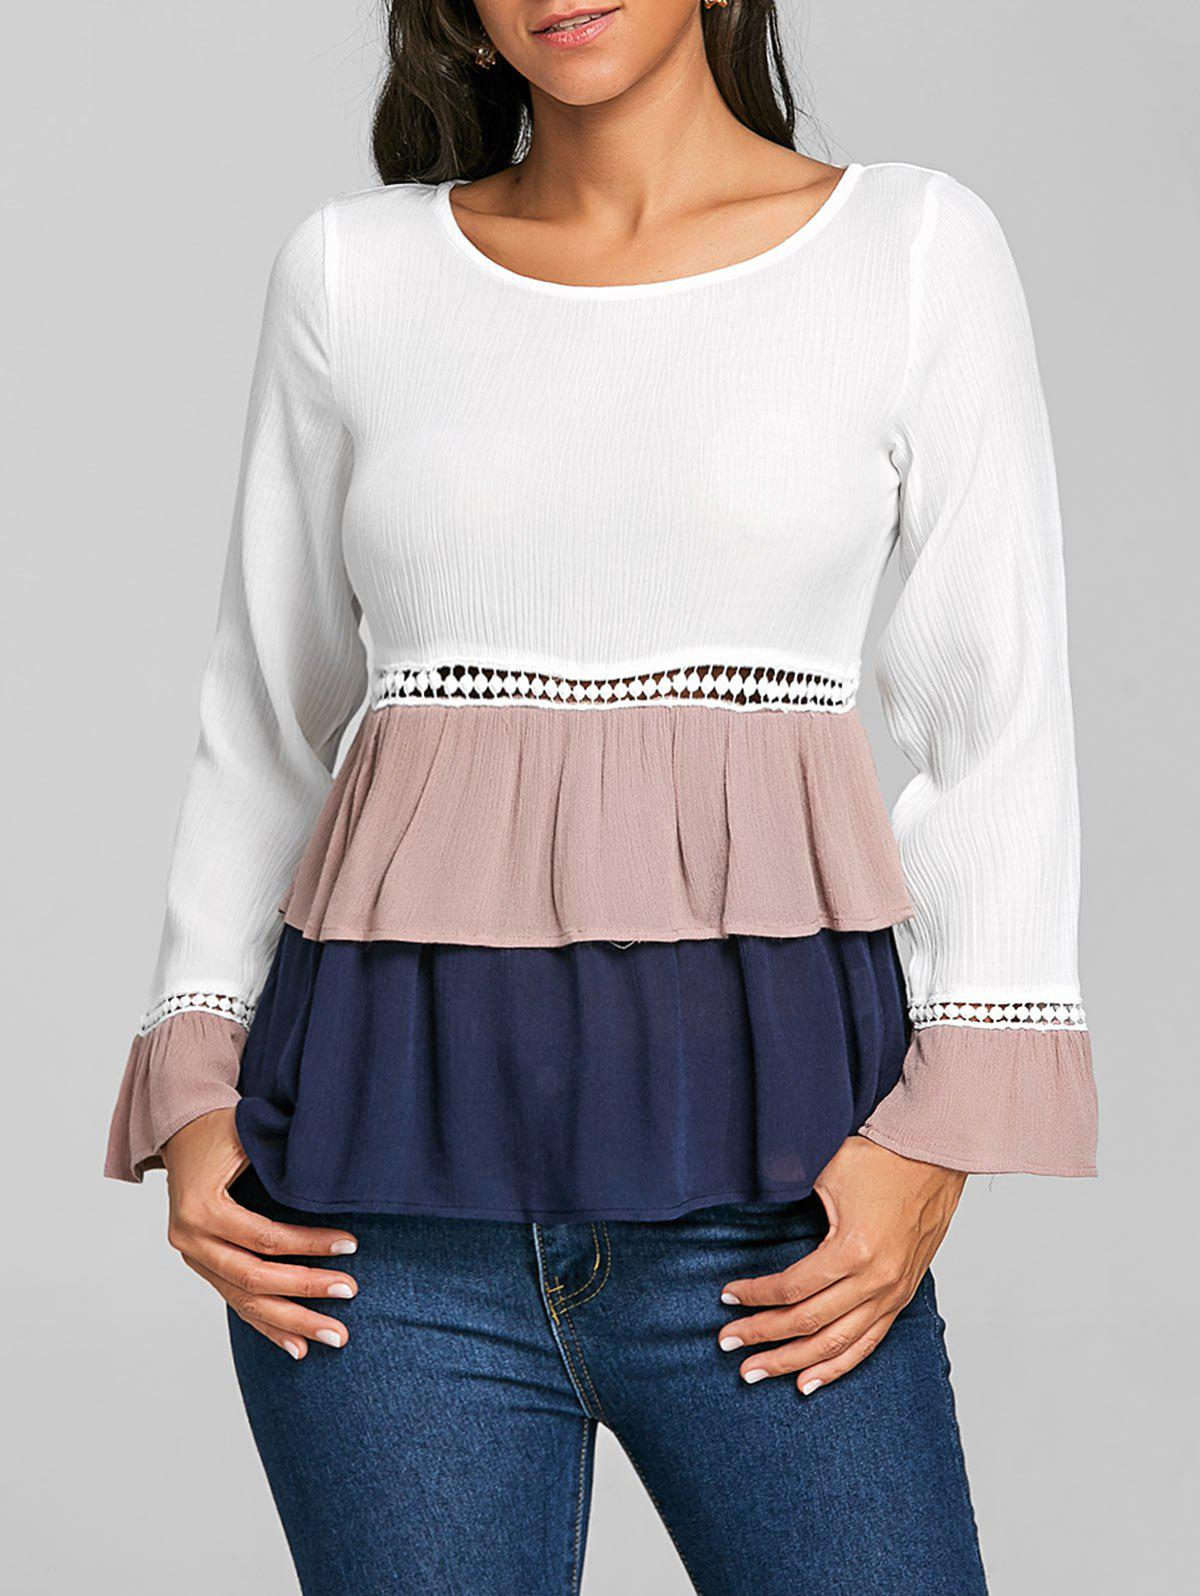 Color Block Bell Sleeve Peplum Blouse - WHITE XL